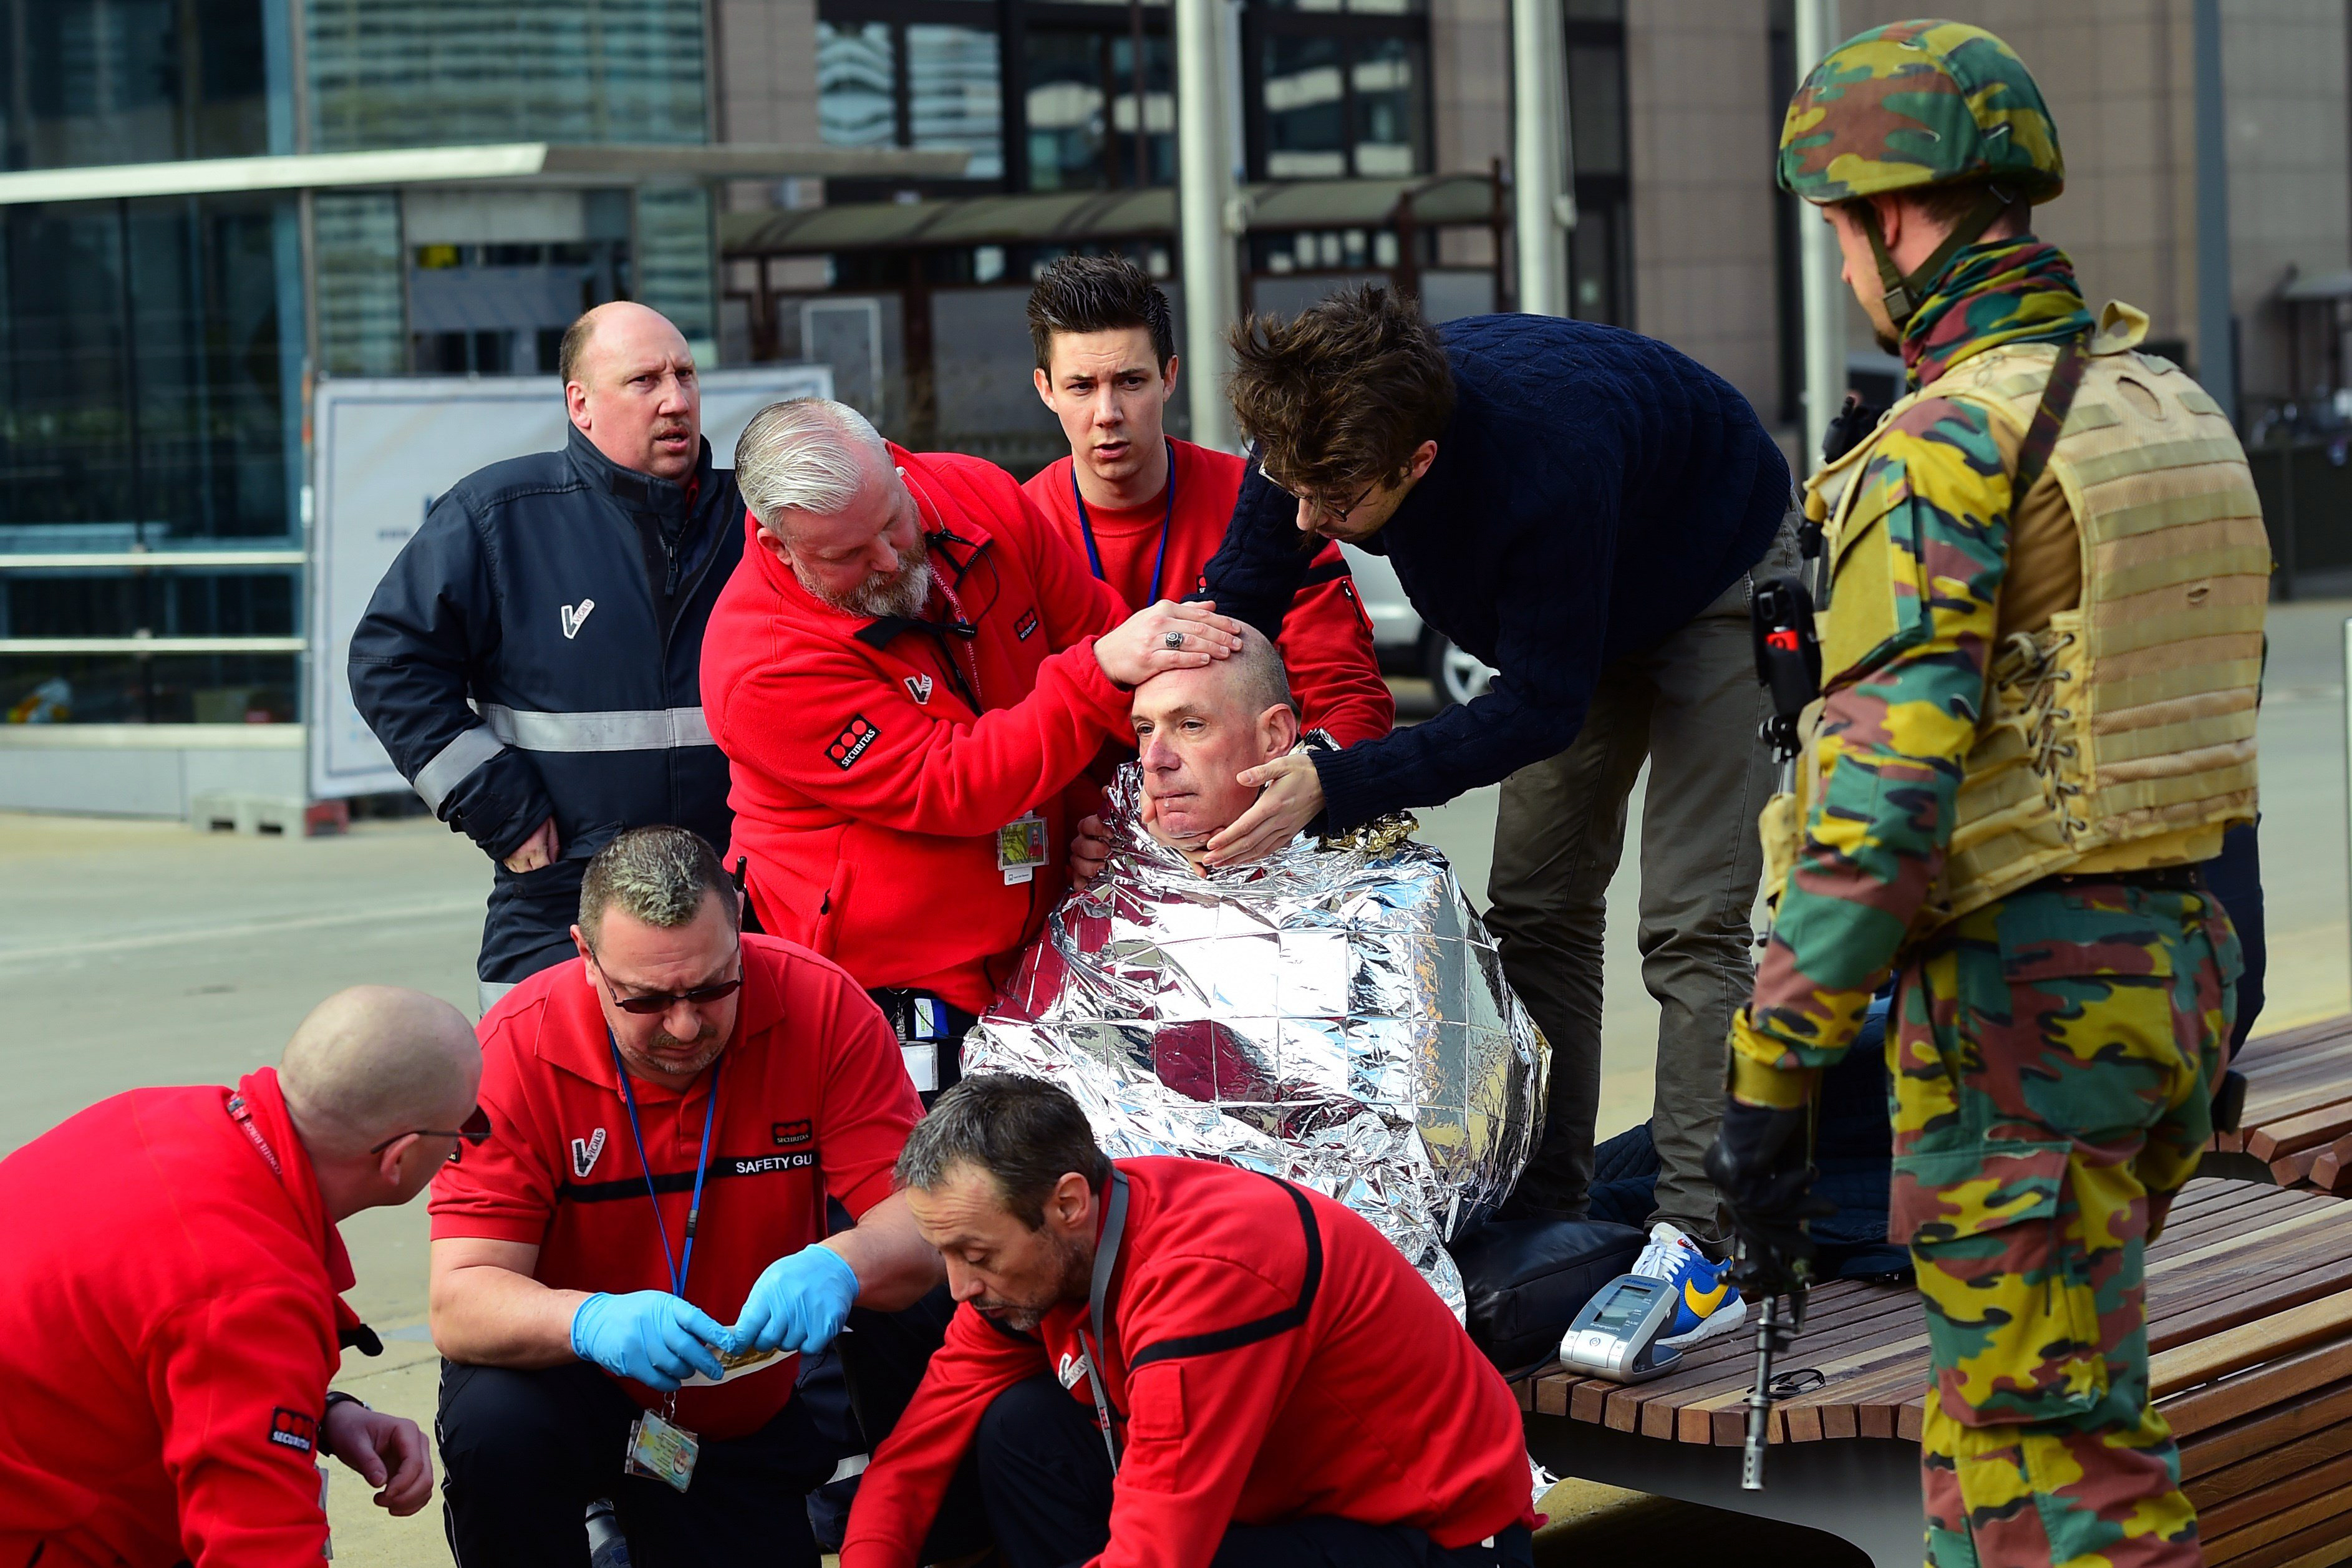 A victim receives first aid by rescuers, on March 22, 2016, near Maelbeek metro station in Brussels, after a blast at this station near the E.U. institutions caused deaths and injuries